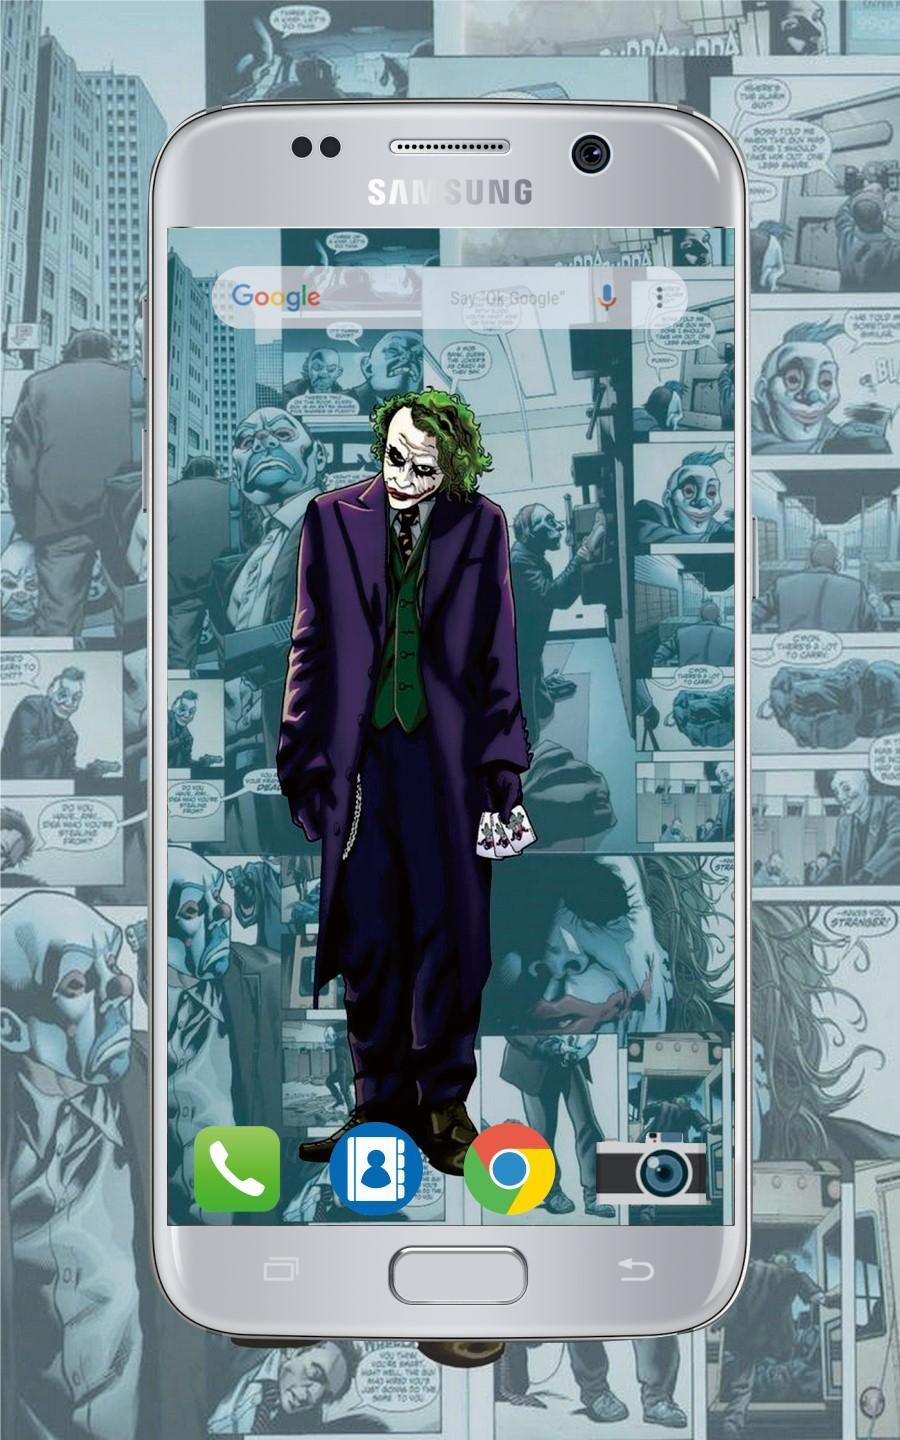 Best Joker Wallpapers 4k Hd Backgrounds For Android Apk